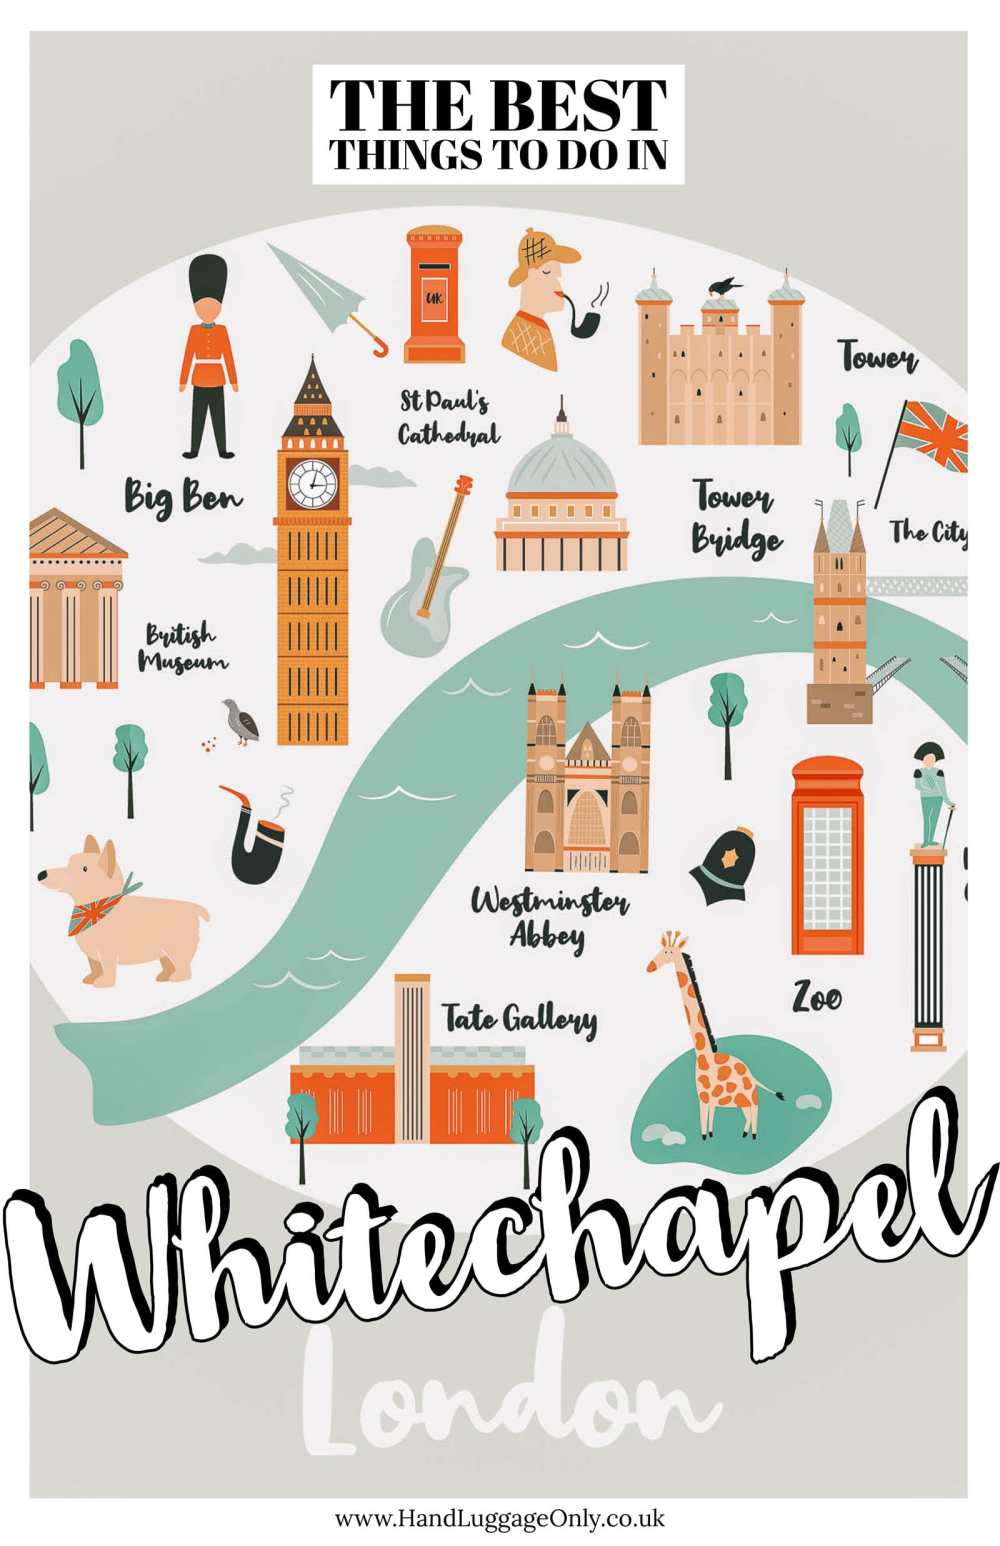 10 Best Things To Do In Whitechapel - London (12)